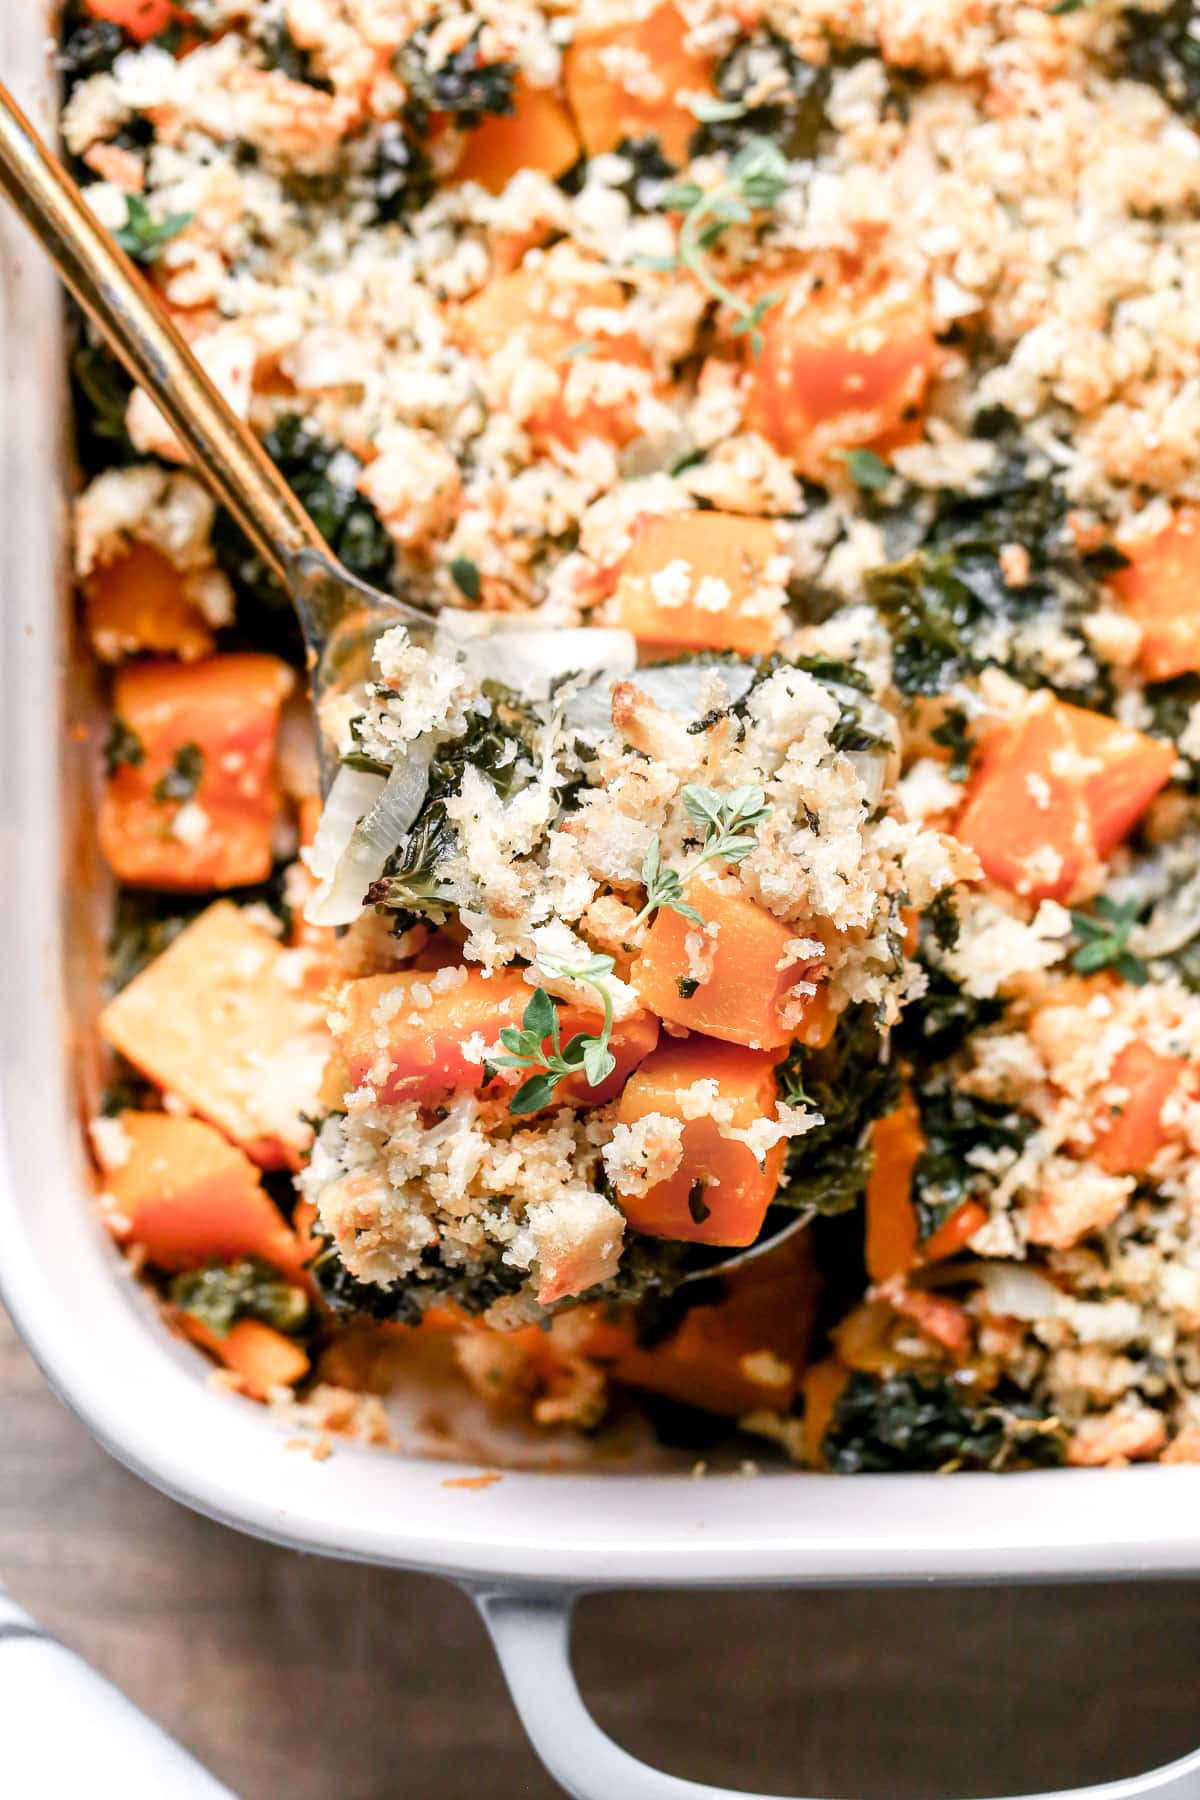 Kale and butternut squash casserole